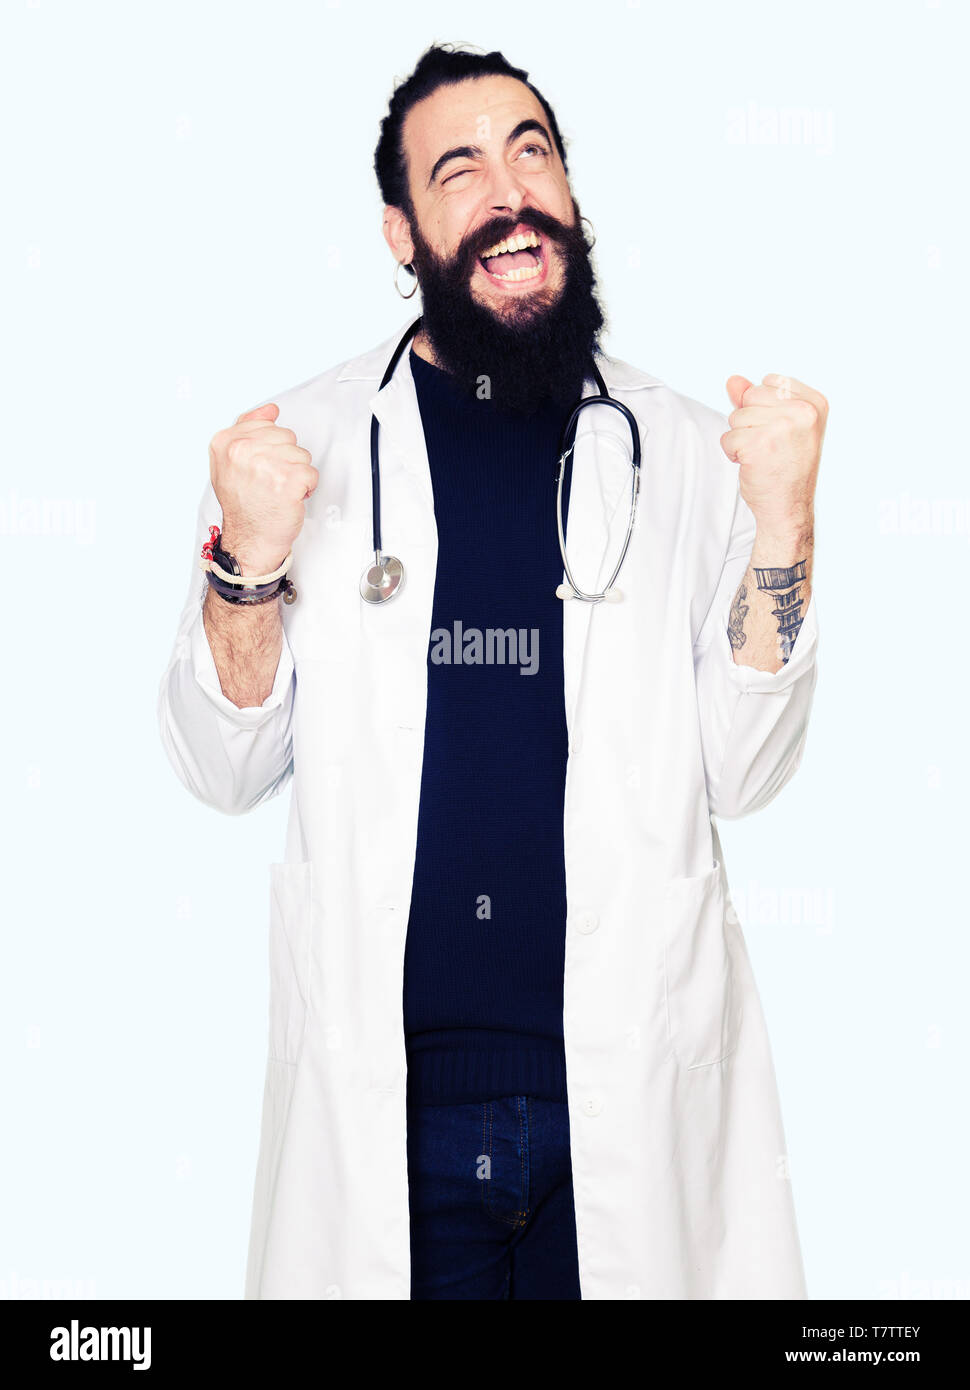 Doctor with long hair wearing medical coat and stethoscope very happy and excited doing winner gesture with arms raised, smiling and screaming for suc Stock Photo